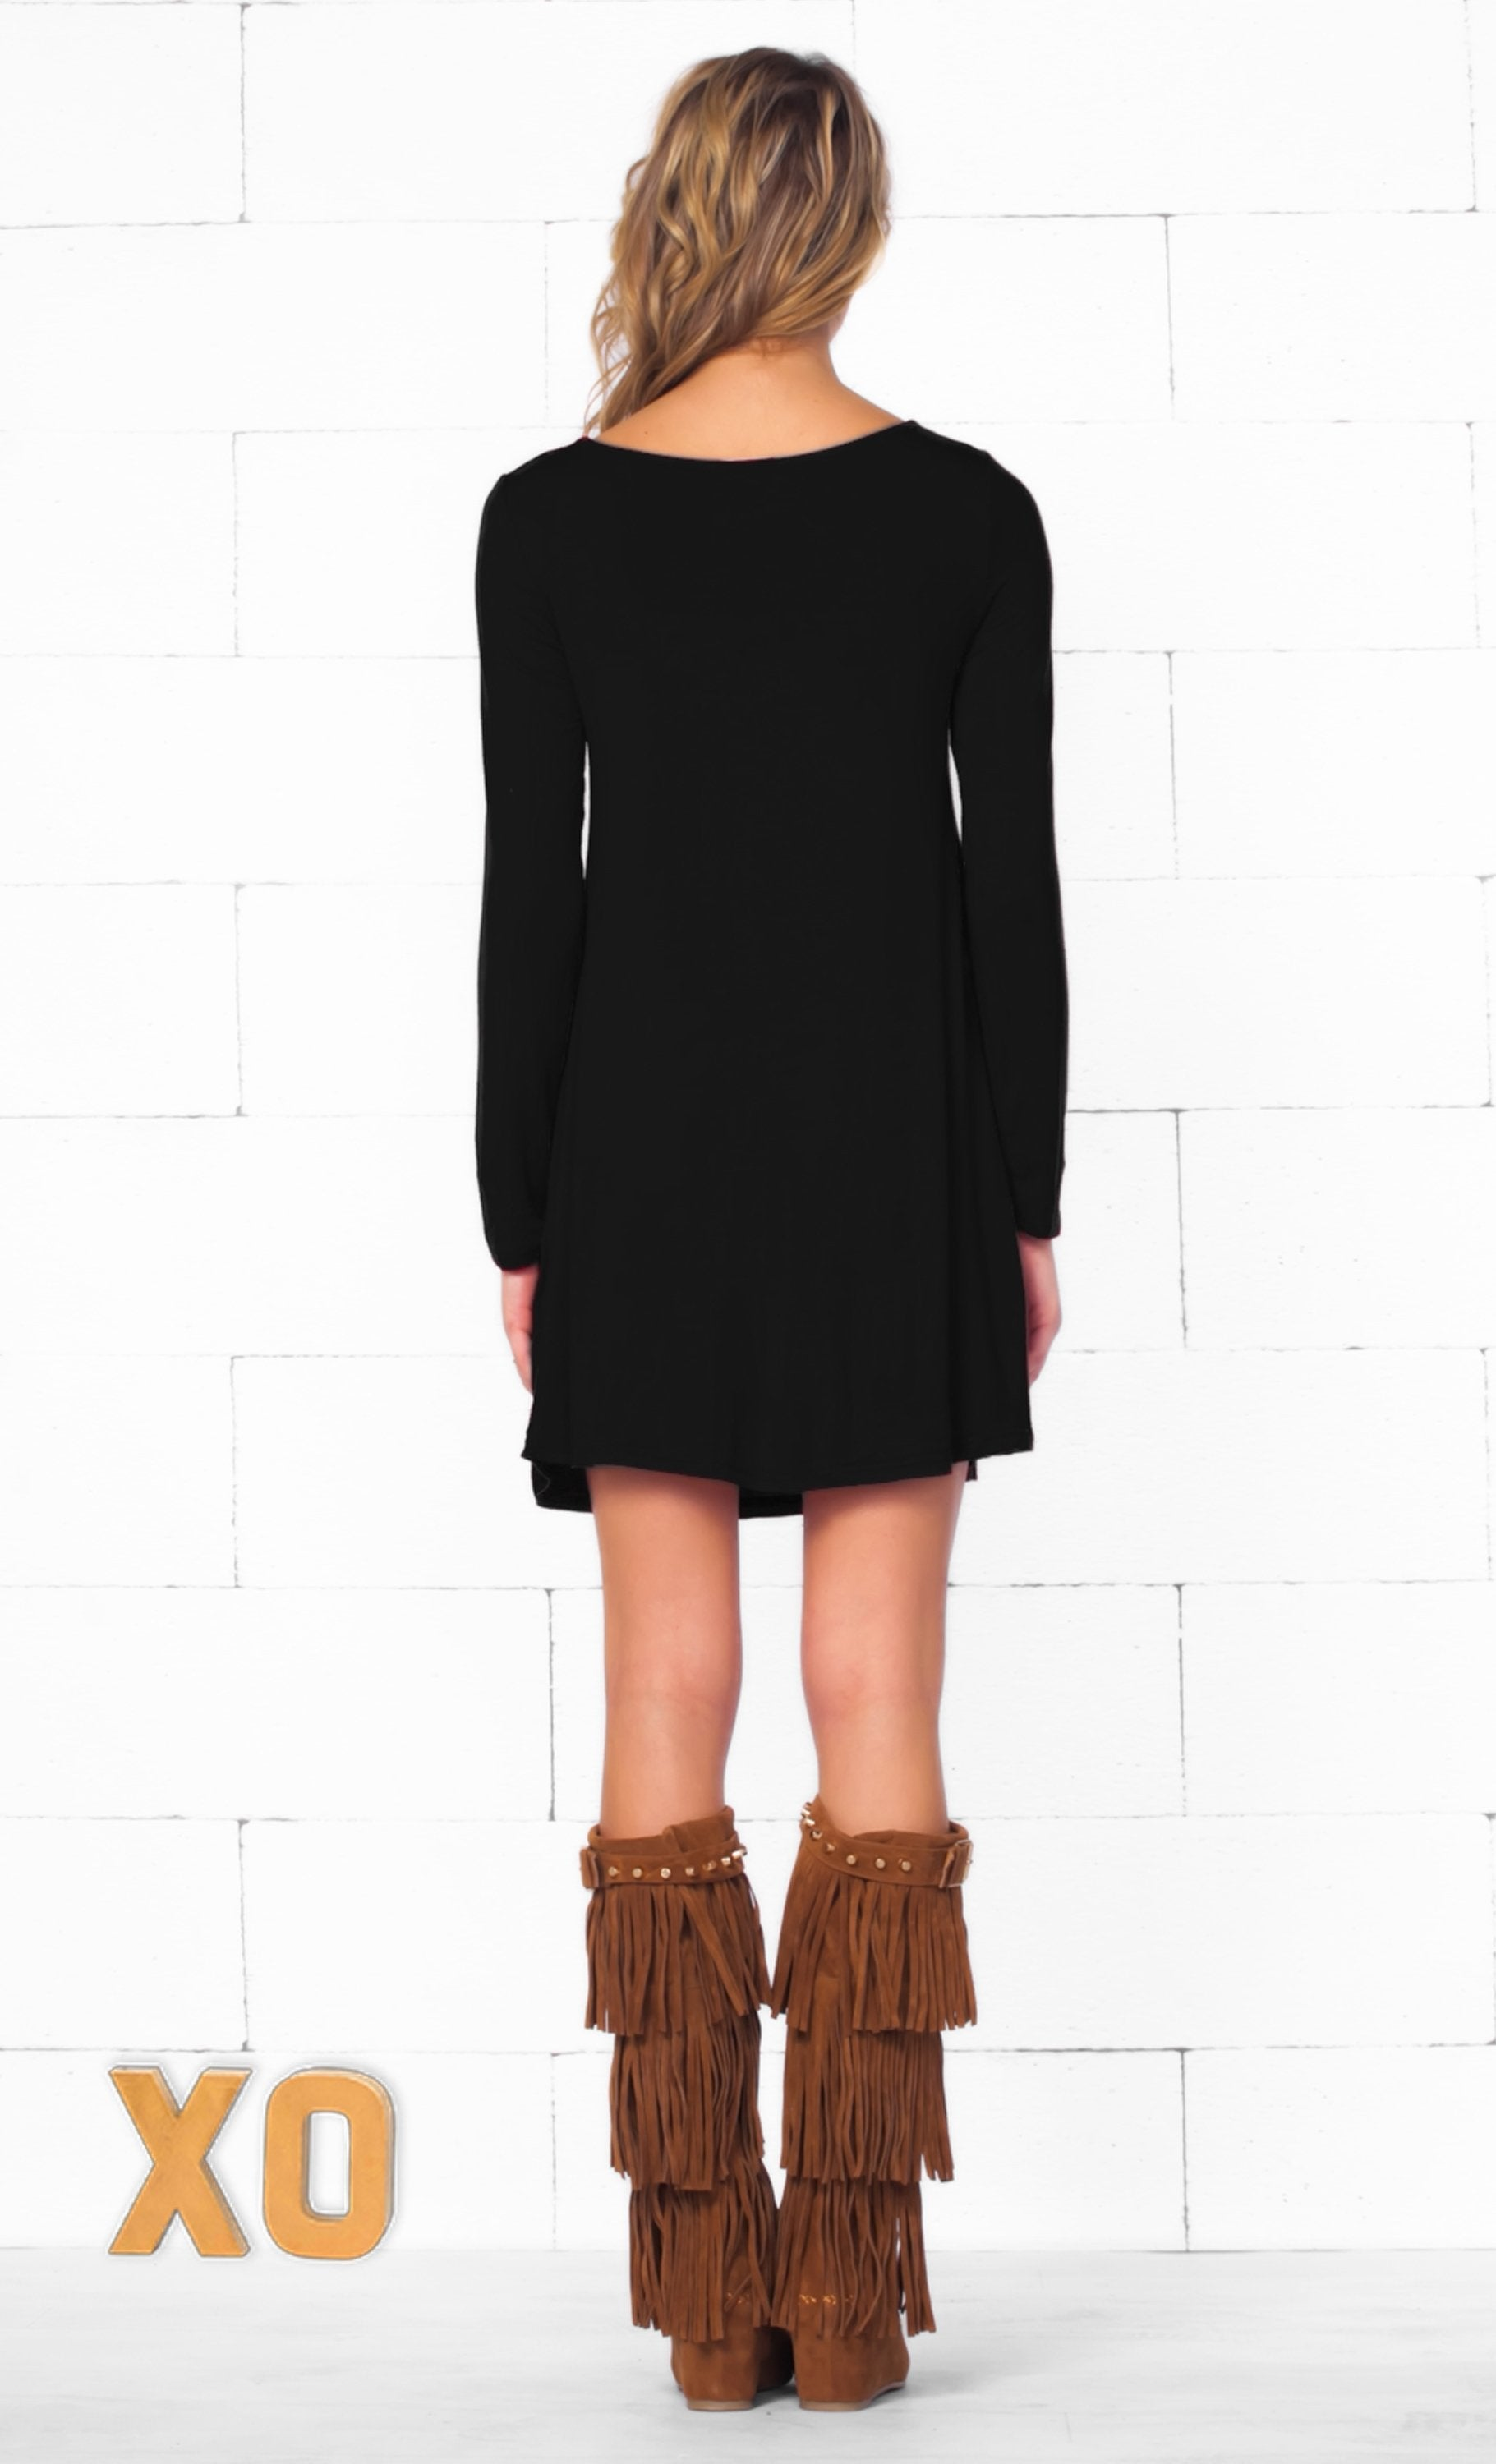 Indie XO Dear Santa Black Gold Glitter Red Nose Reindeer Head Long Sleeve Scoop Neck Tunic Top Mini Dress